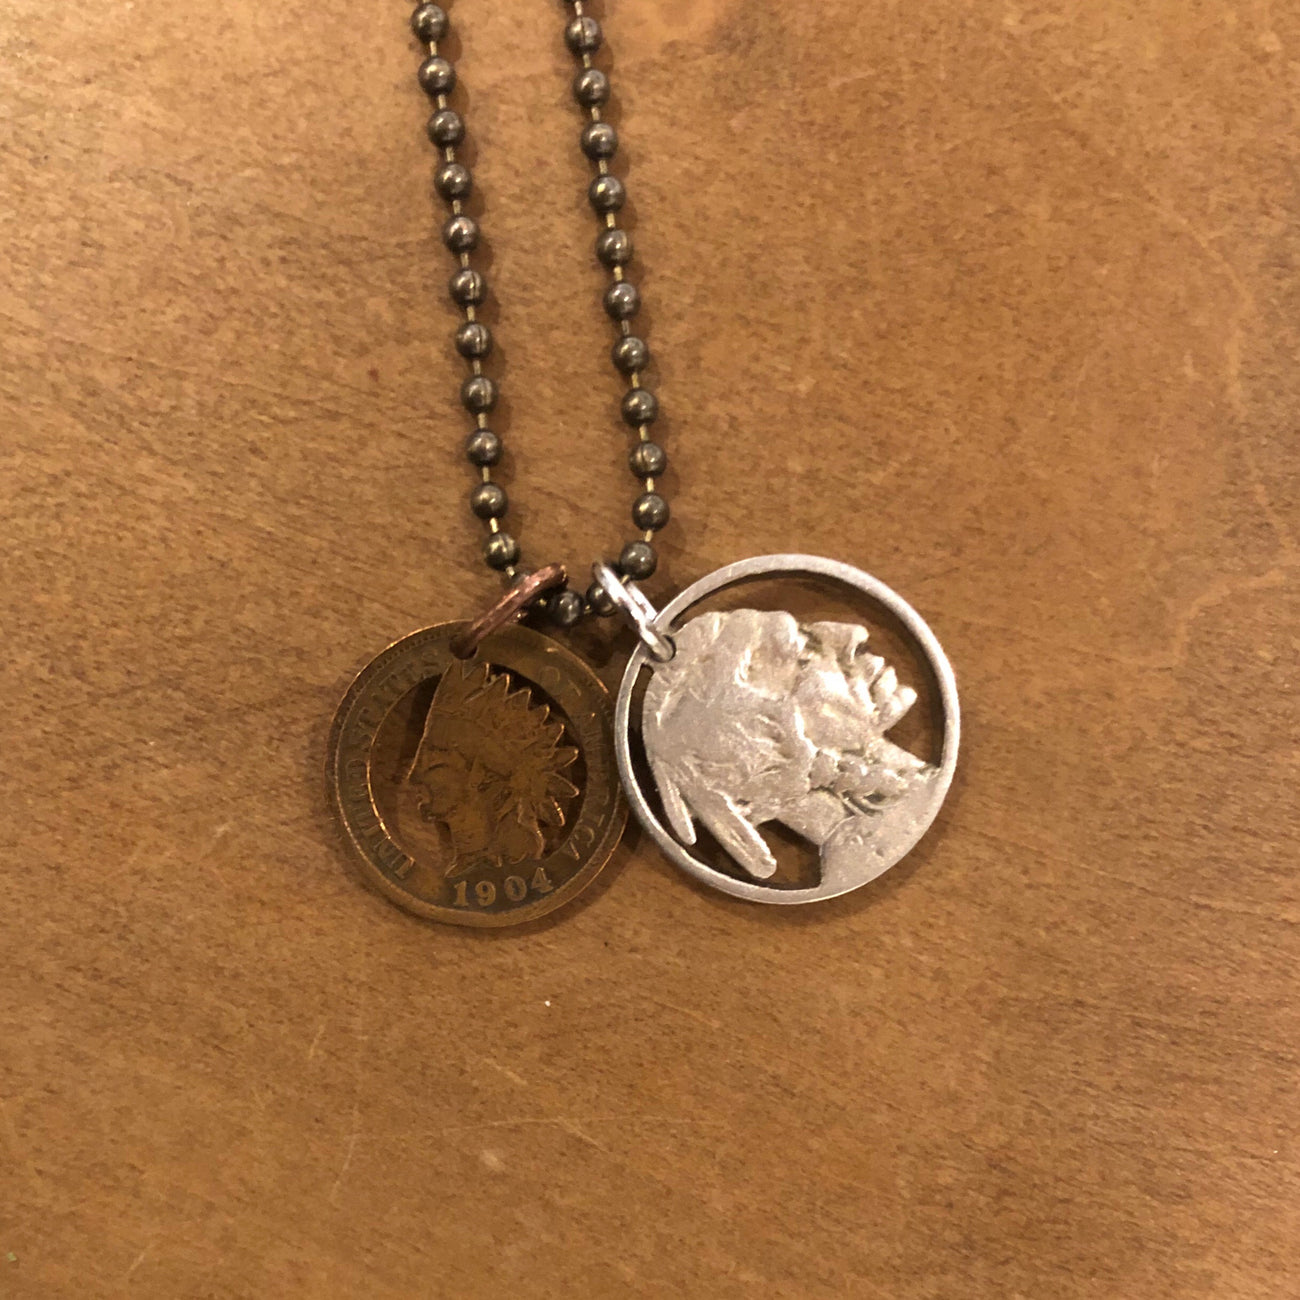 A TSY Hand-Cut Indian Nickel & Penny Vintage Coin Pendant Necklace, Jewelry, FINSL SALE!